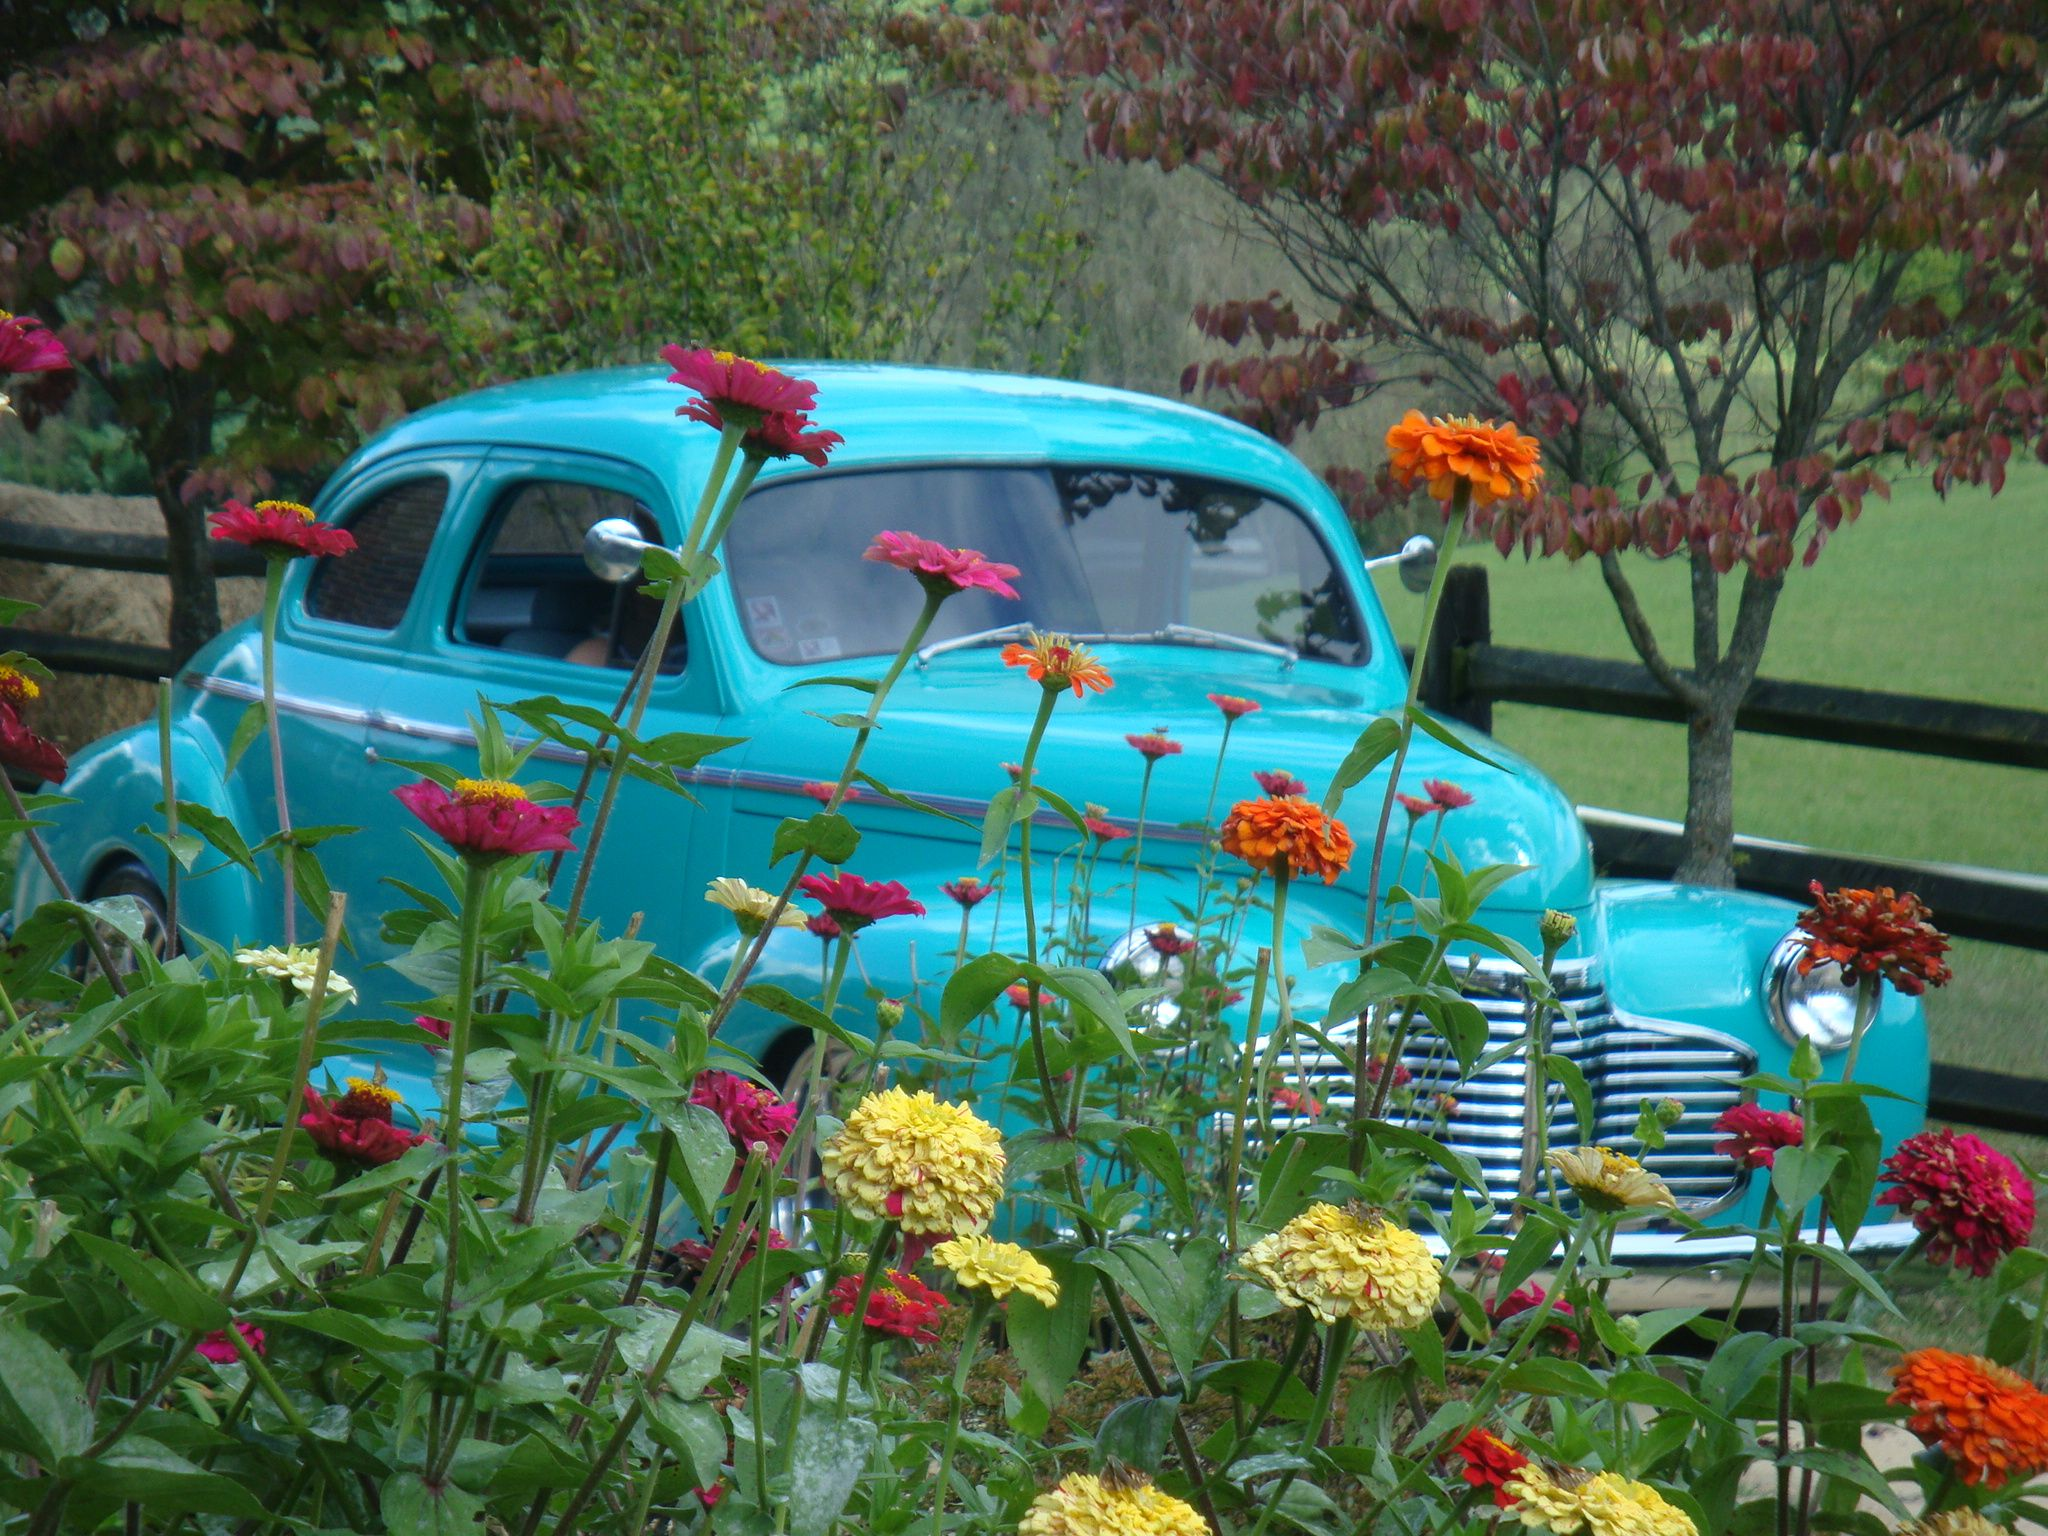 Classic cars make a bright statement for entrances and exits.  Taken at Storybrook Farm in Jonesborough, TN.